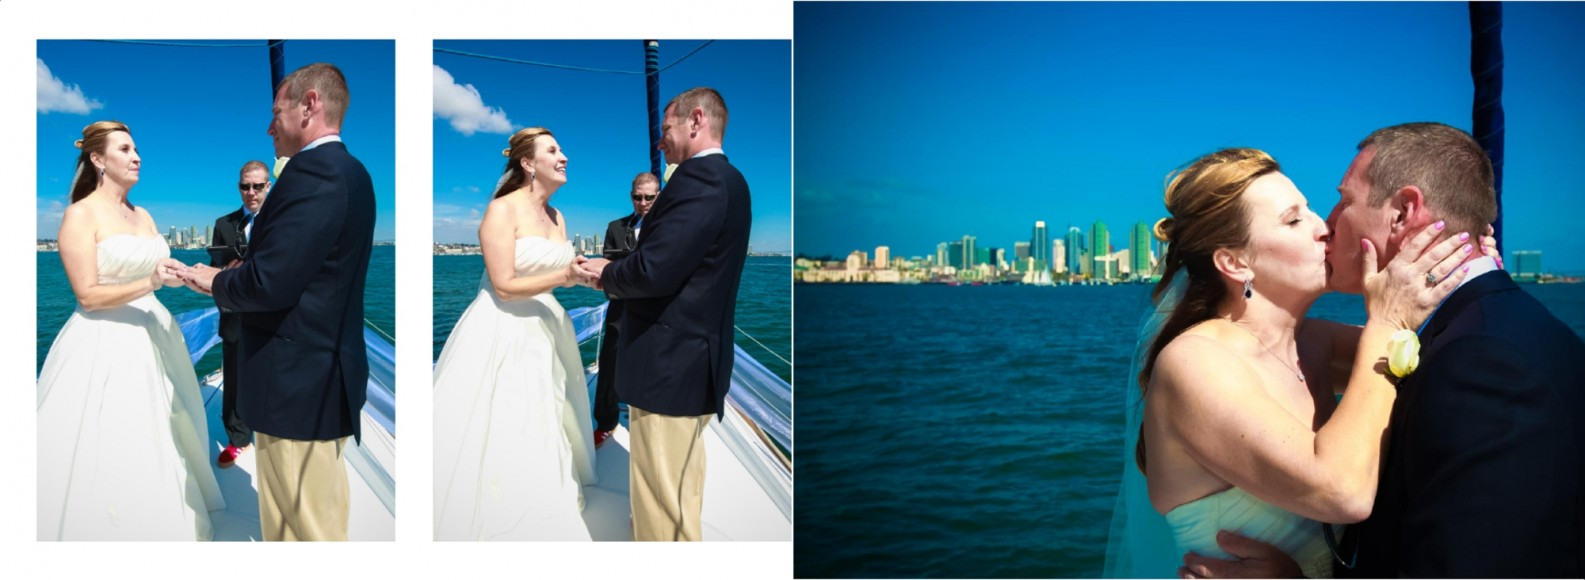 Laura and Davids Wedding Book - San Diego Yacht Wedding by Wedding Photographers Andrew Abouna - Pages 18-19